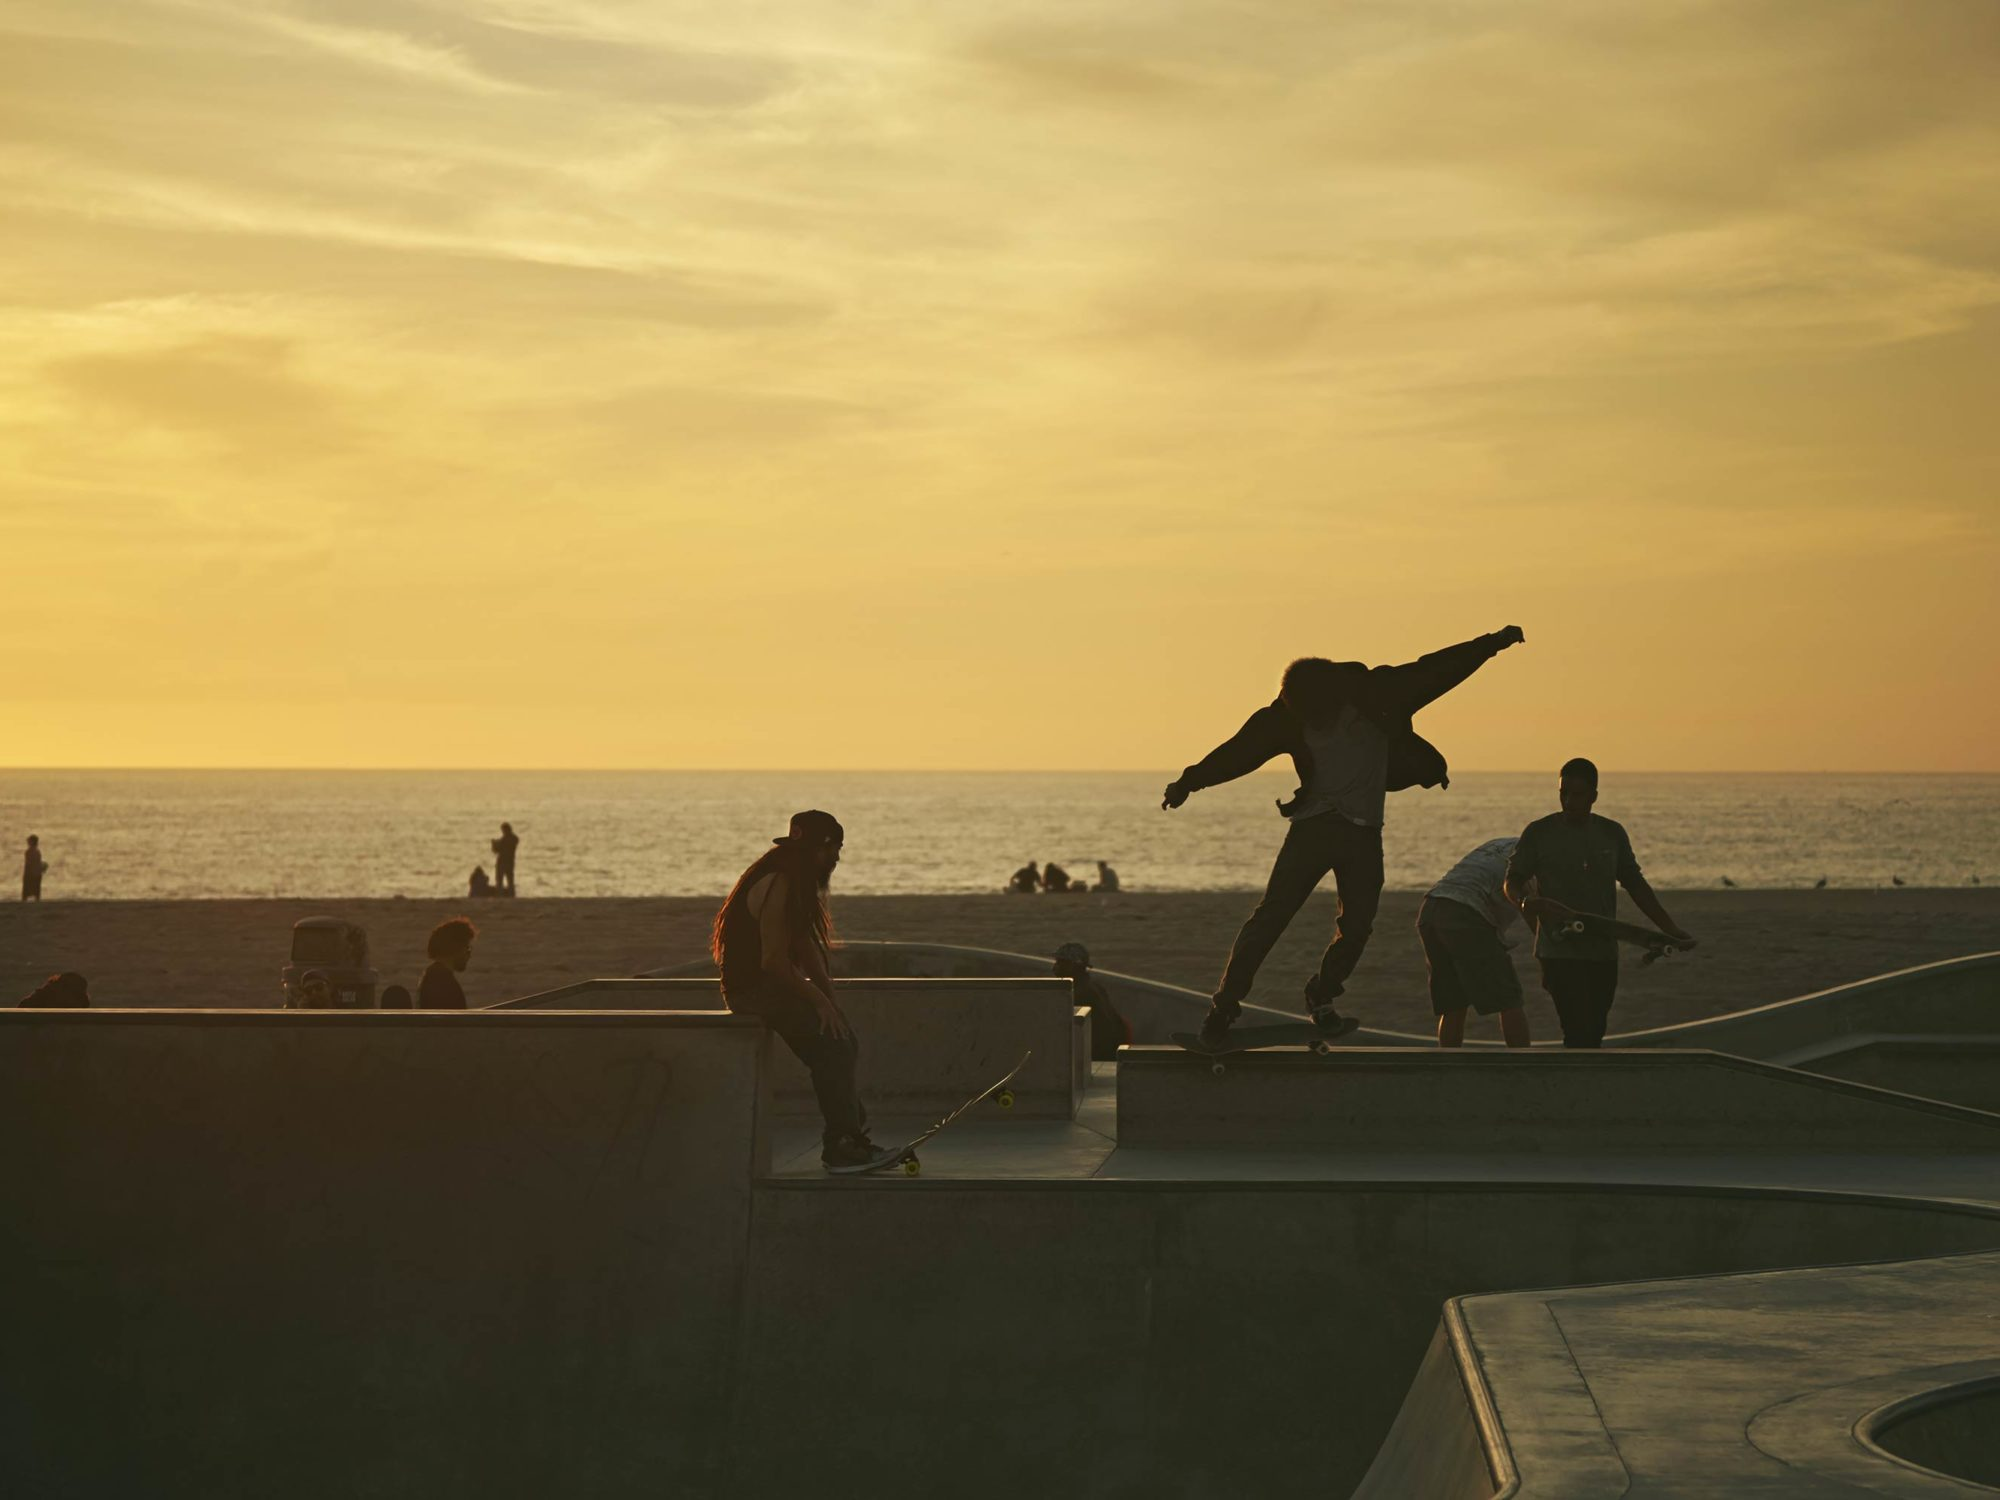 Summer Haze - Skate Park, Venice Beach Collection - Fine Art Photography by Toby Dixon